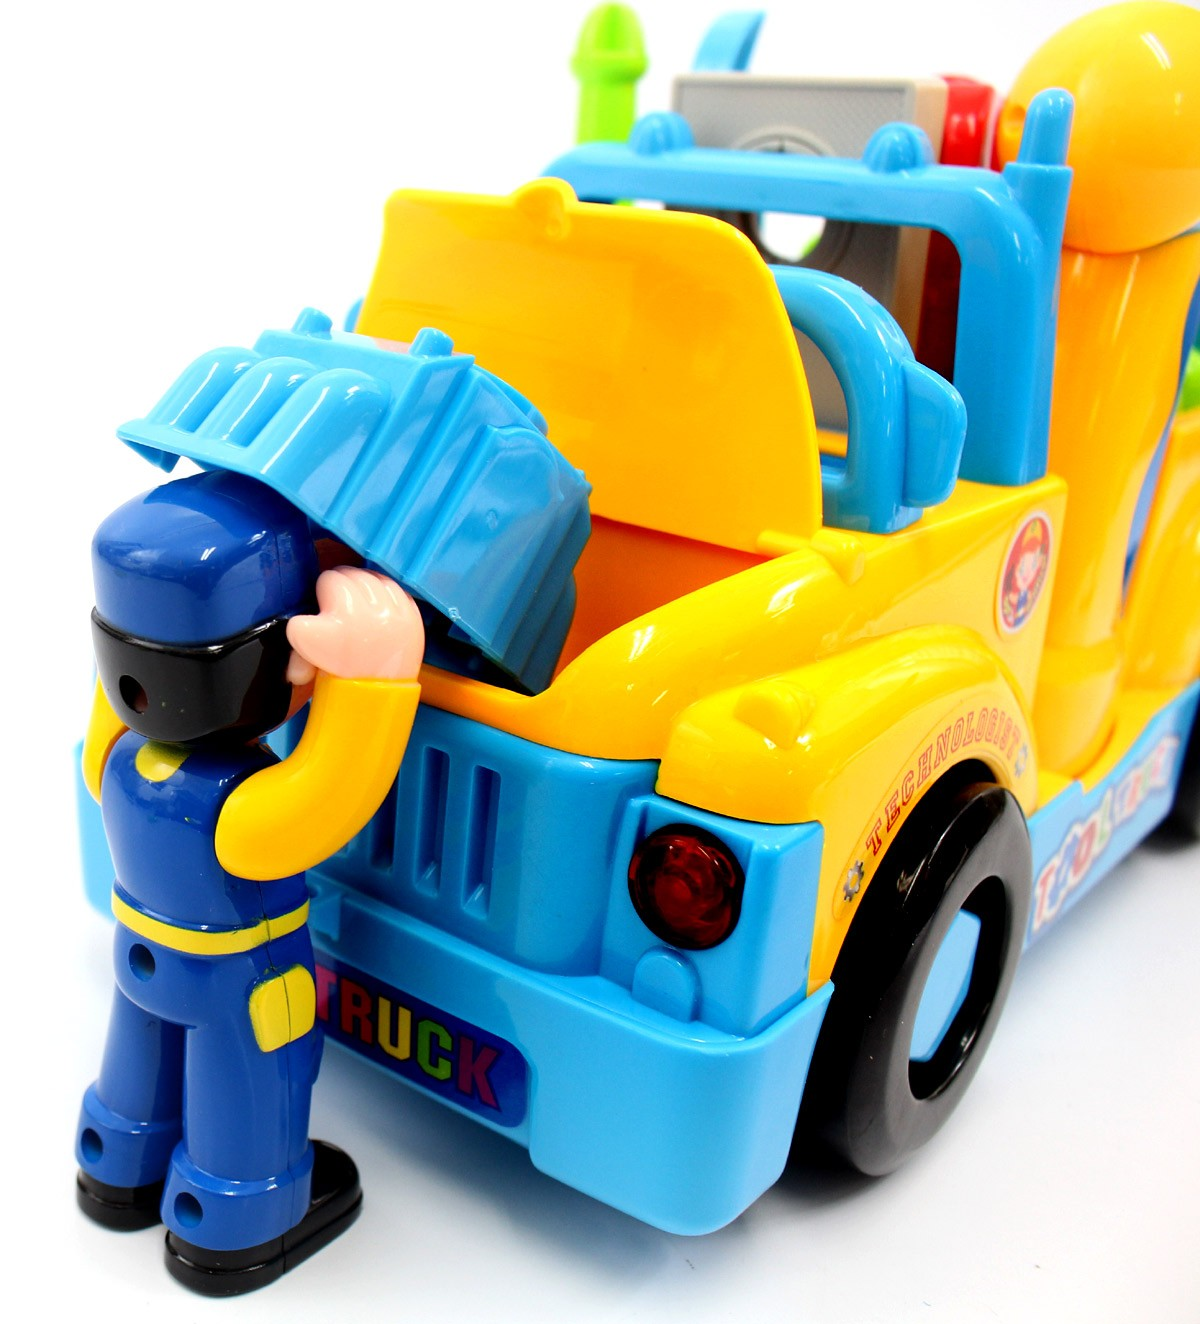 Multifunctional Take Apart Toy Tool Truck With Electric Drill And Tools For Kids